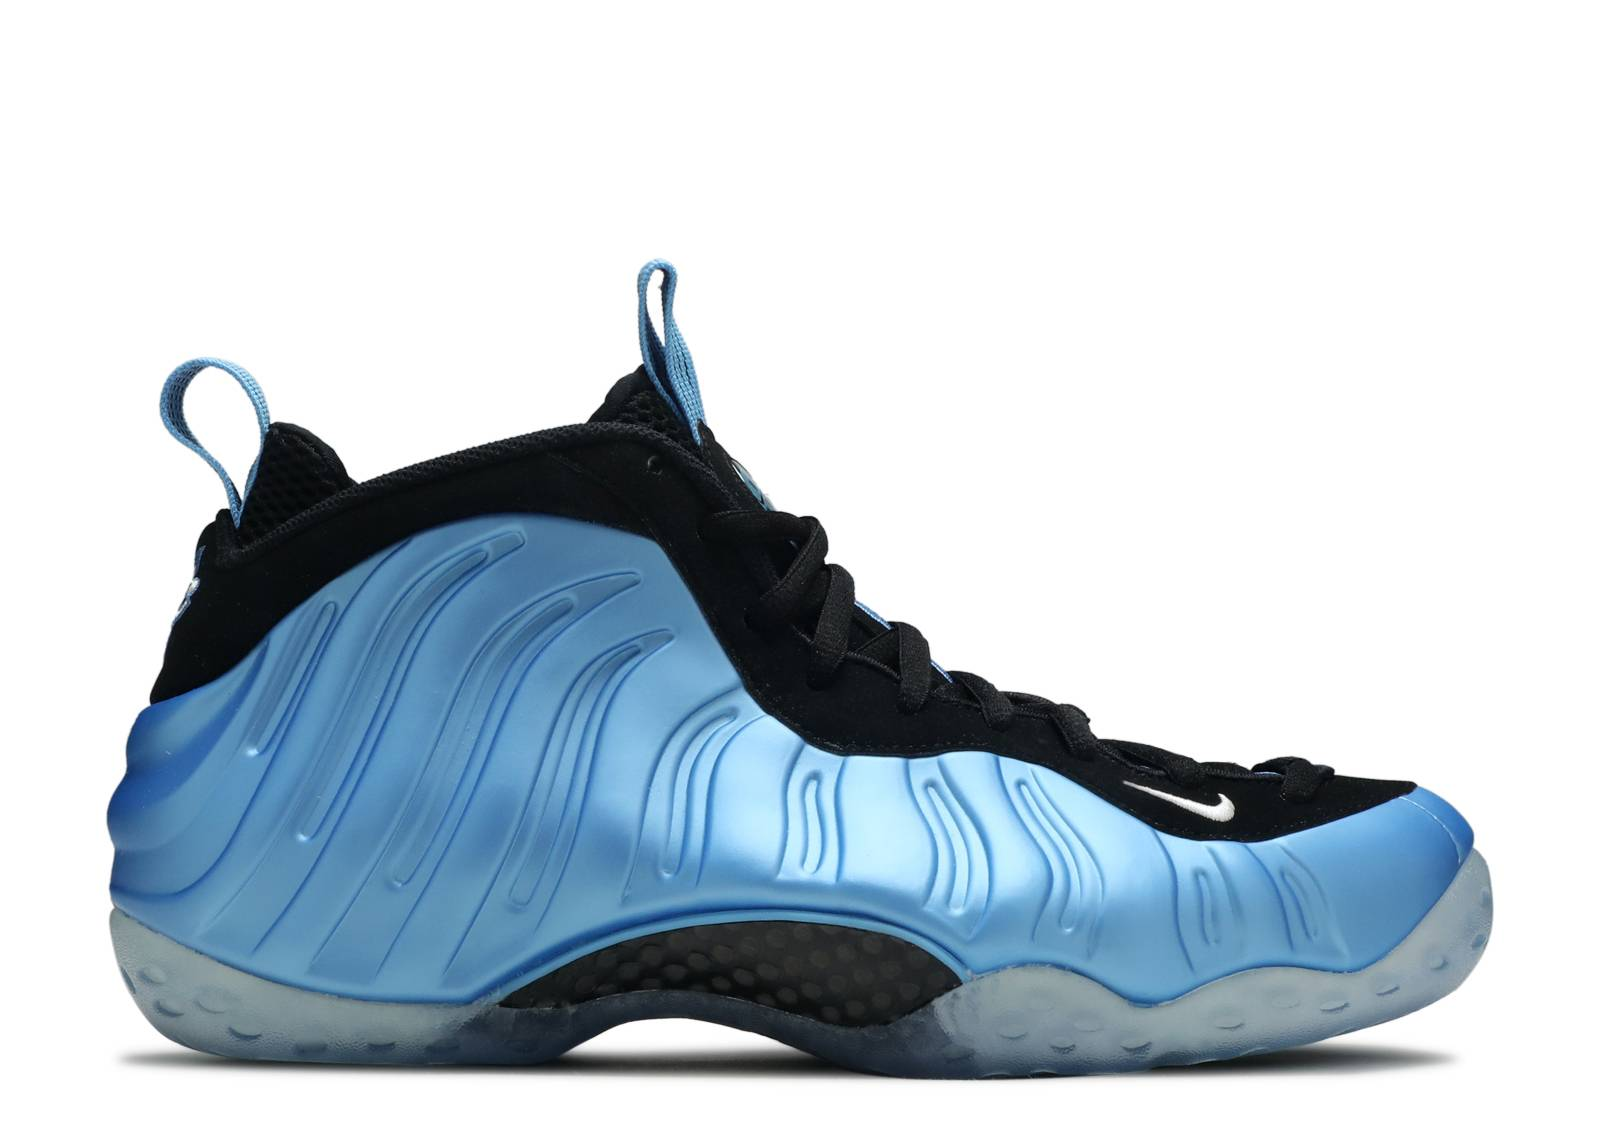 Nike Air Foamposite One Beijing Planet Hoops ... eBay